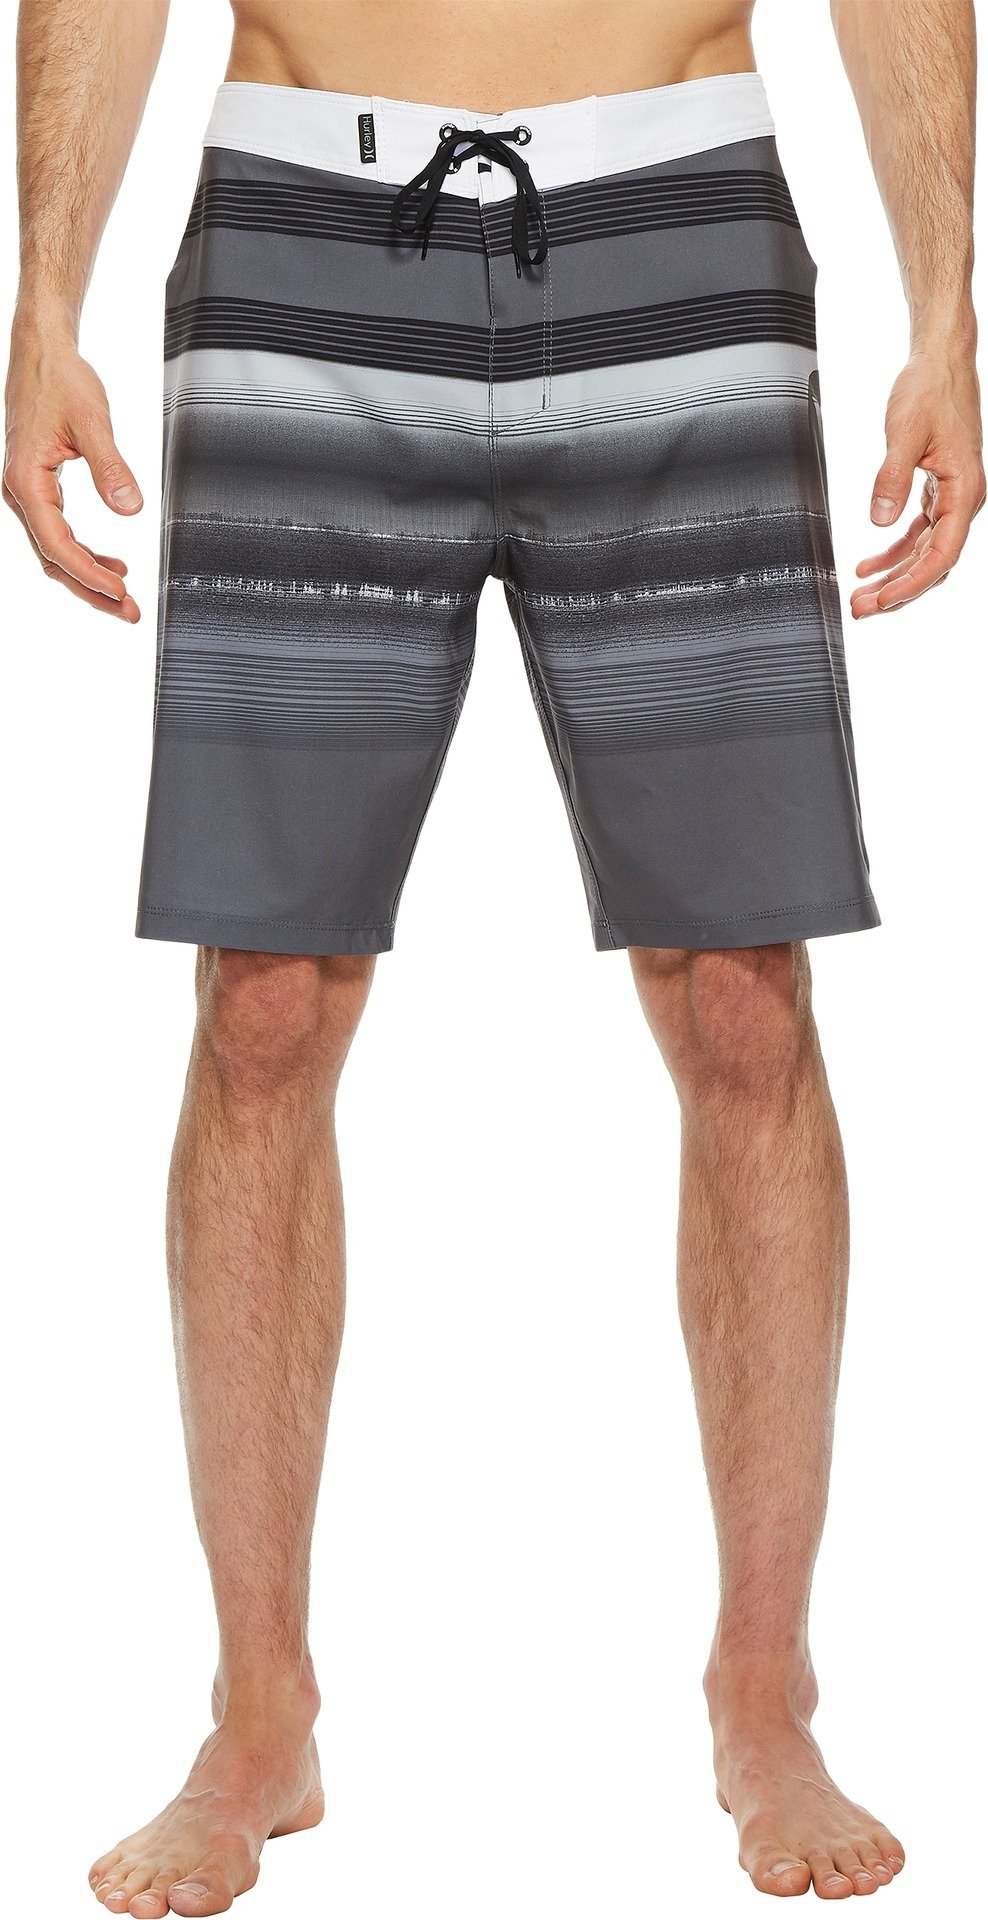 Hurley Men's Striped 20'' inch Phantom Stretch Boardshort, Dark Grey/White, 40